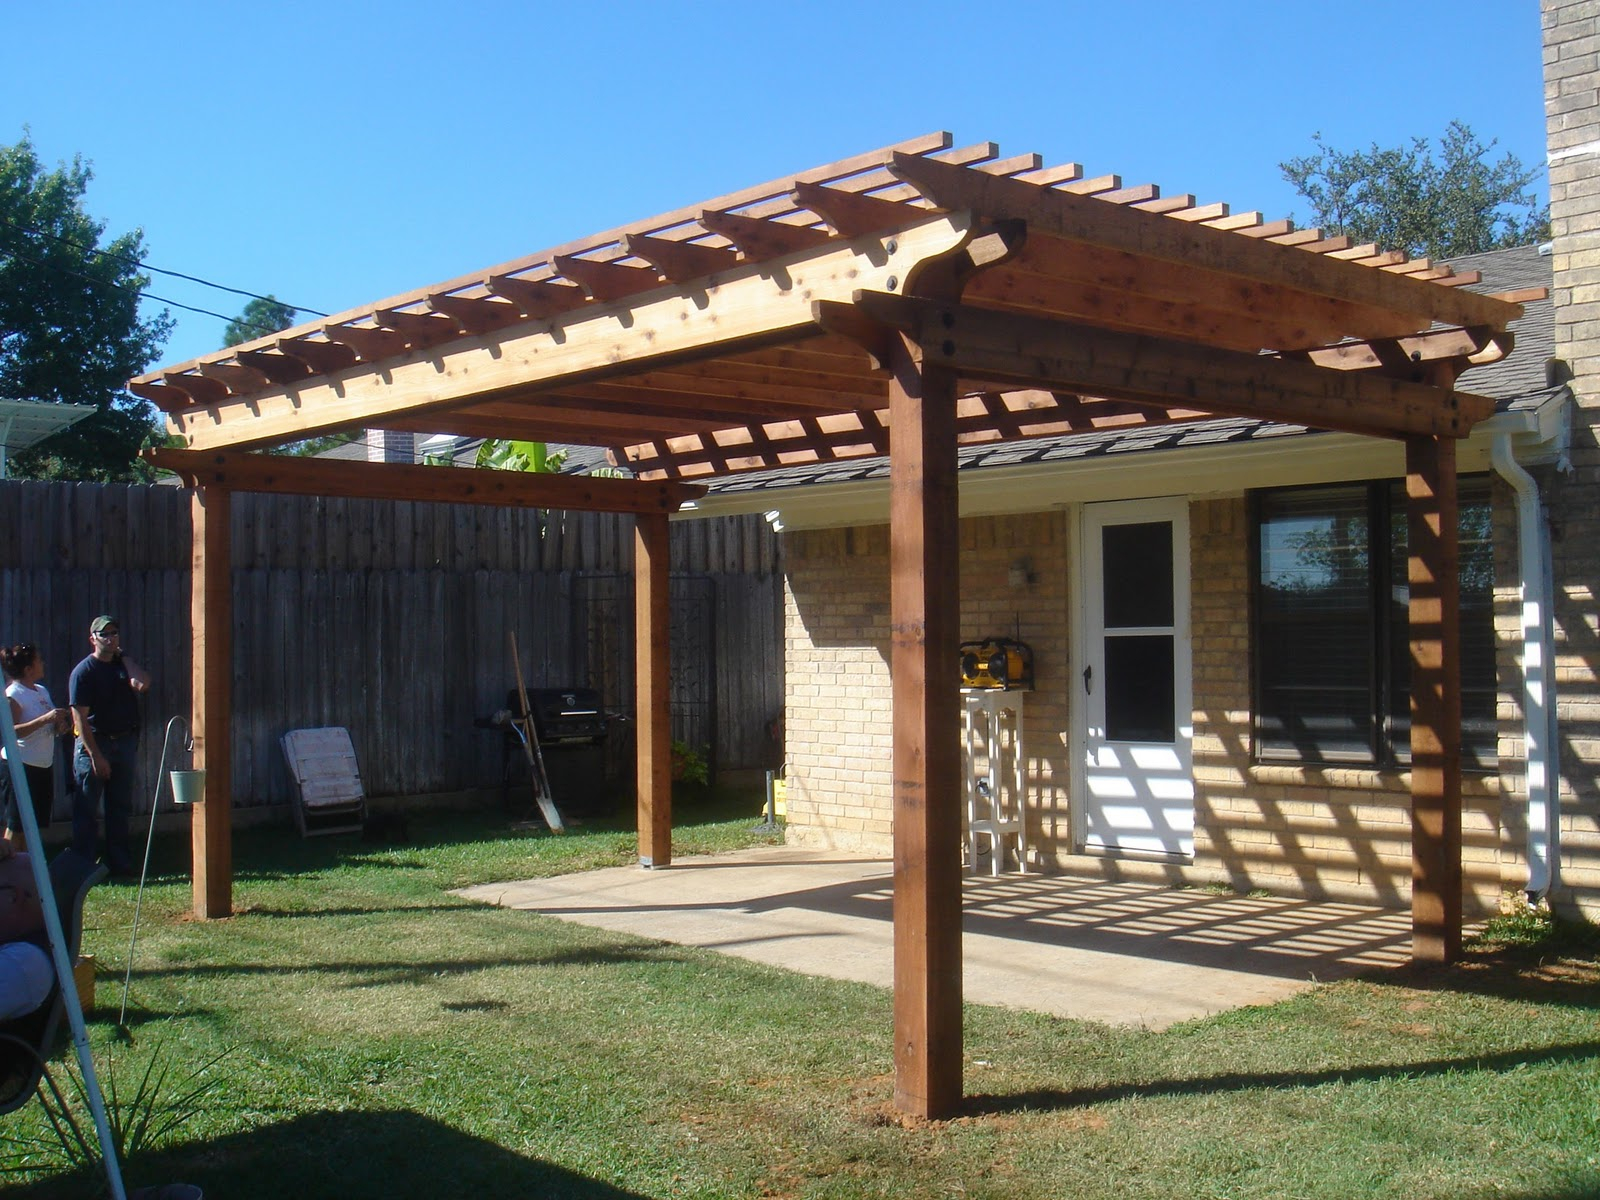 Modern Simple Pergola And Gazebo Design Trends Attached To House with 10 Clever Concepts of How to Upgrade Backyard House Ideas